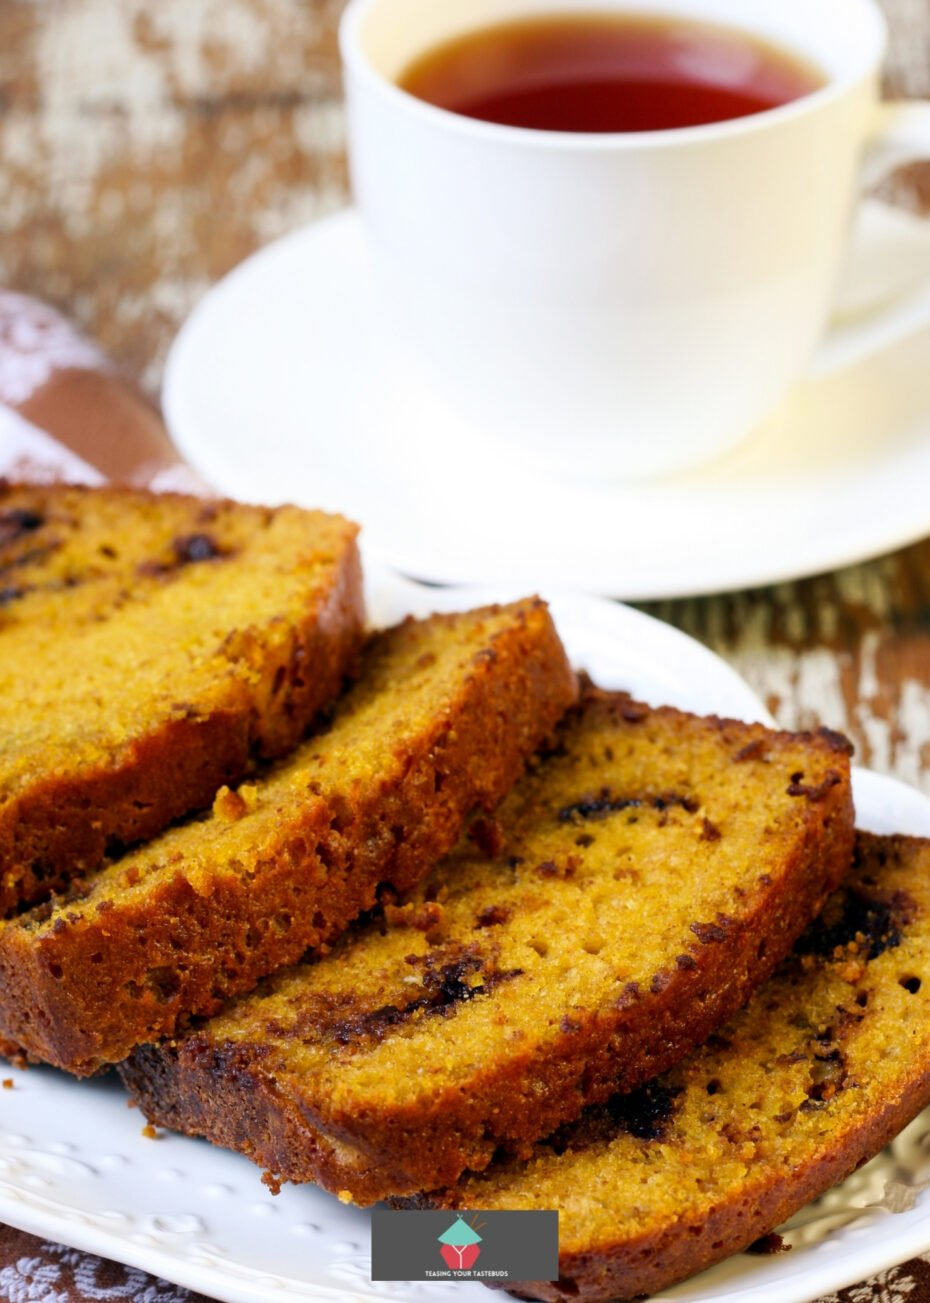 Dolly's Chocolate Chip Cake. Very easy recipe and a family favorite. Makes two loaves so perfect for gifts or freezing too.